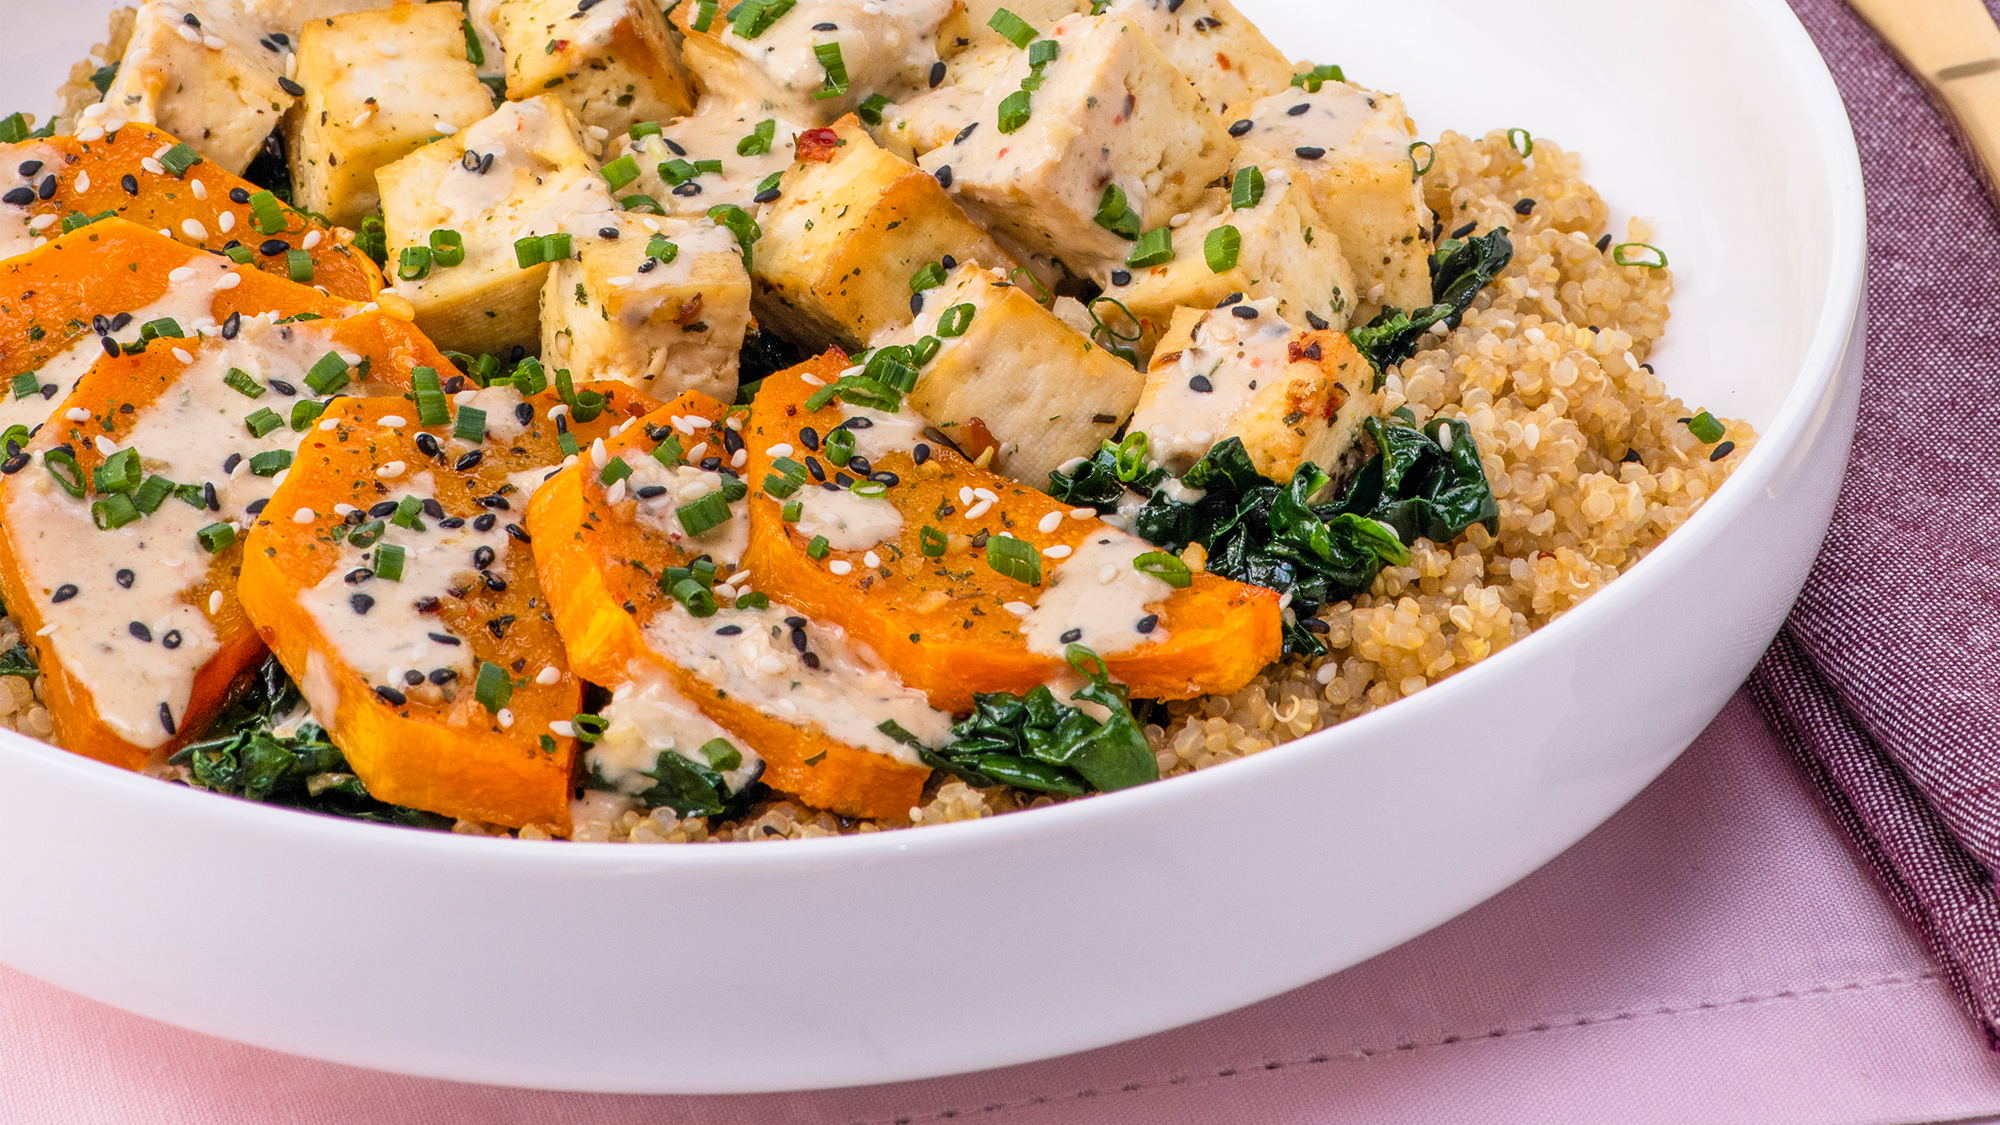 McCormick Hearty Tofu Bowl